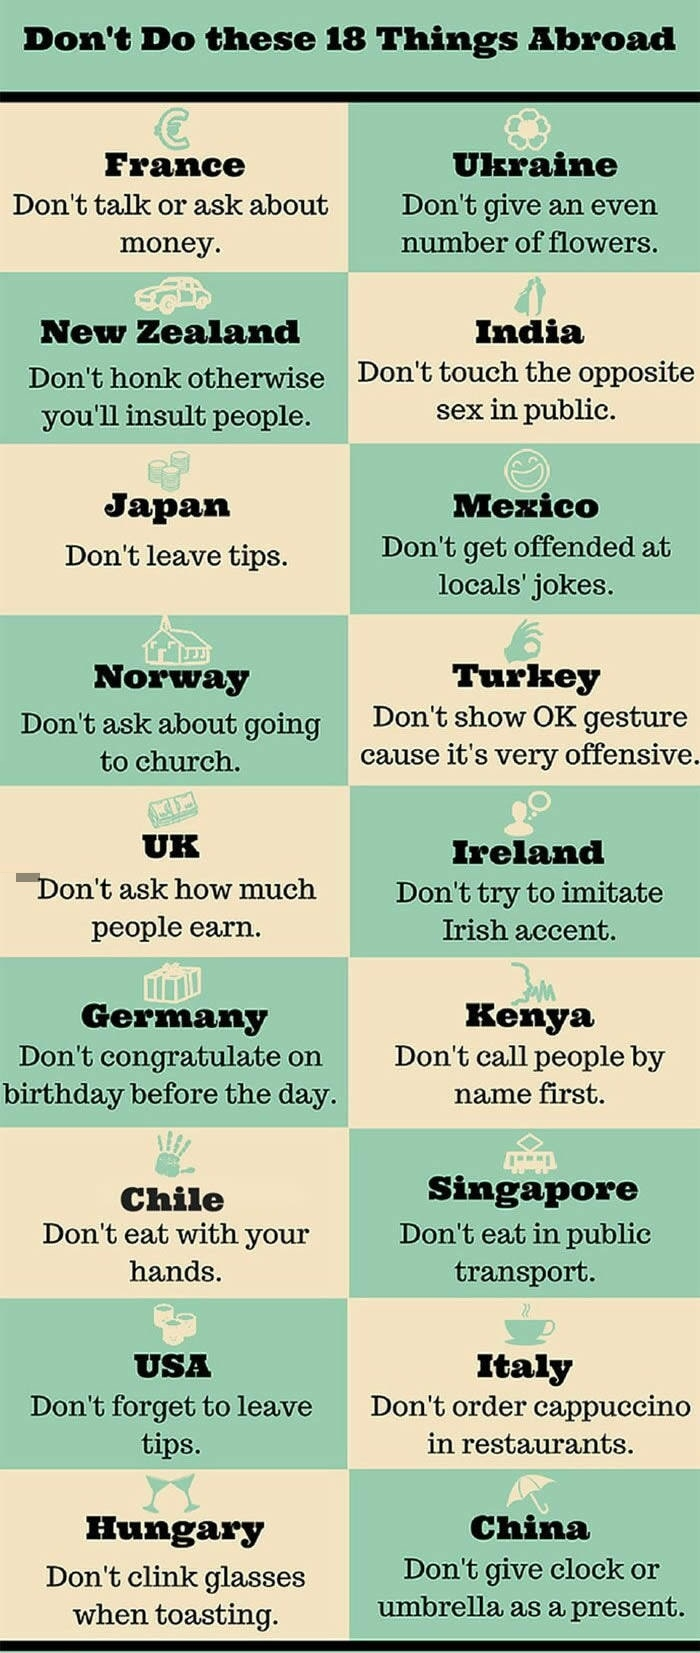 Don't do these things abroad